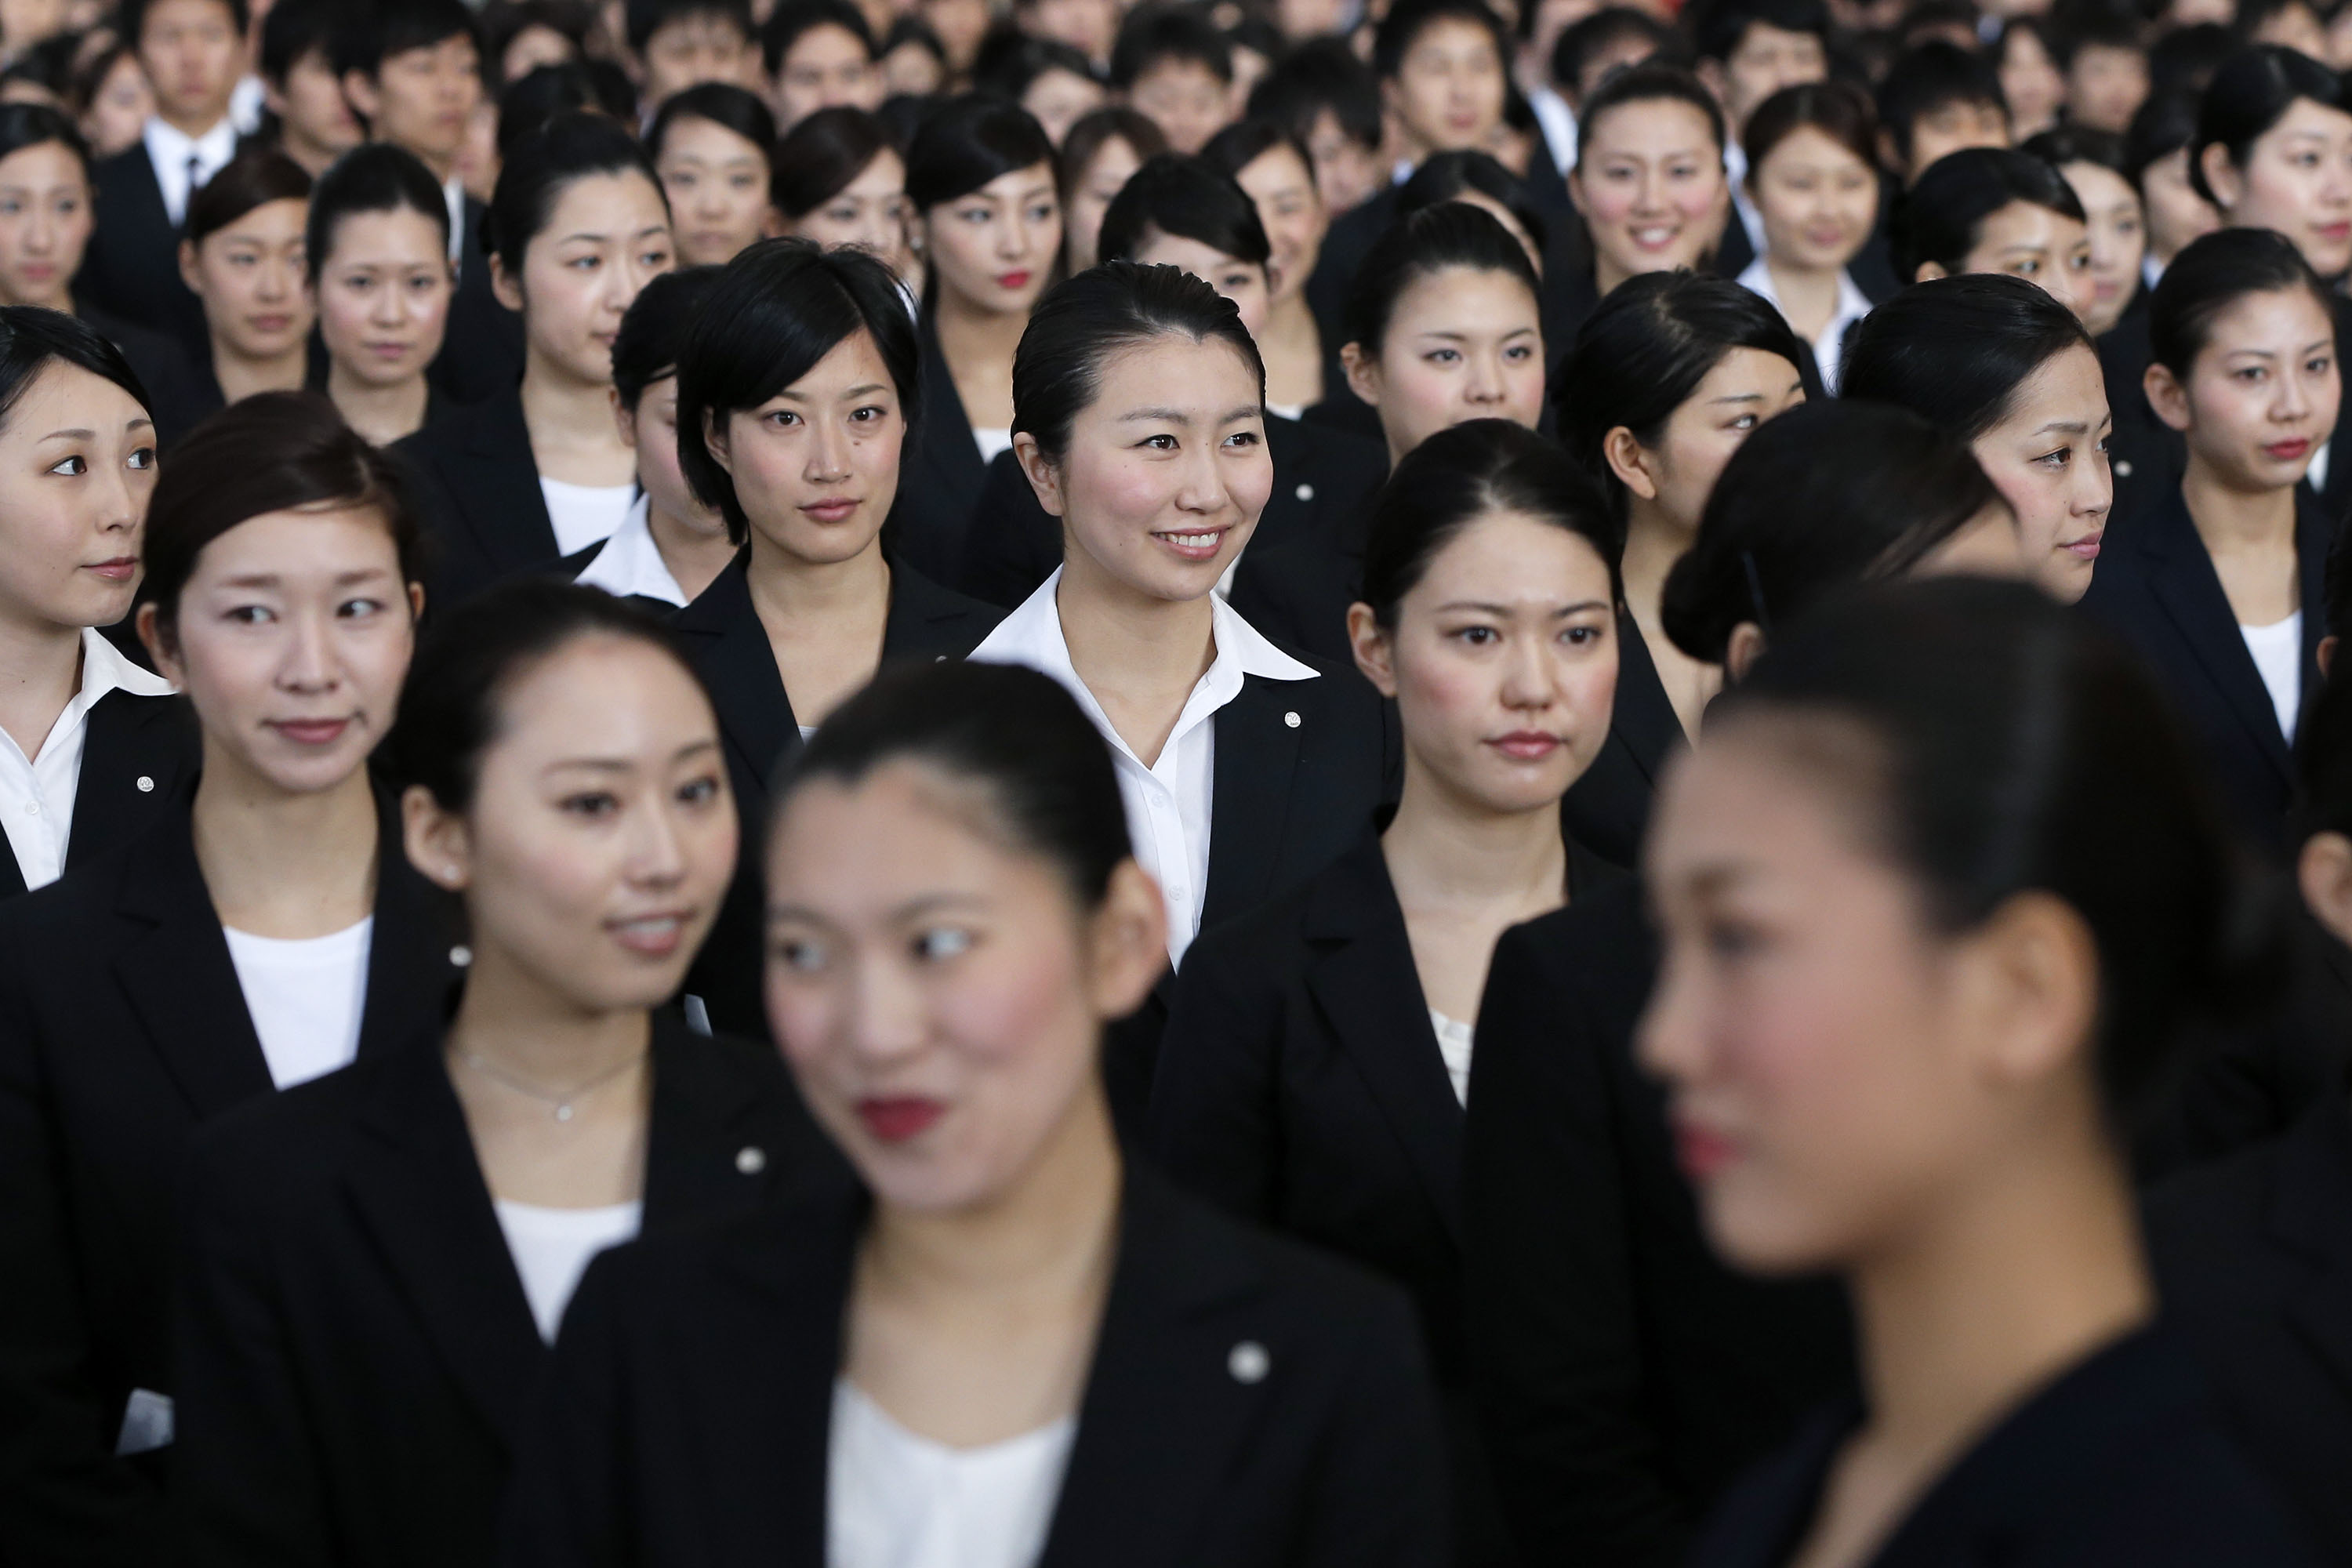 Flying high: While these new recruits with Japan Airlines are now gainfully employed, many single women in Japan struggle to survive on low salaries.   BLOOMBERG